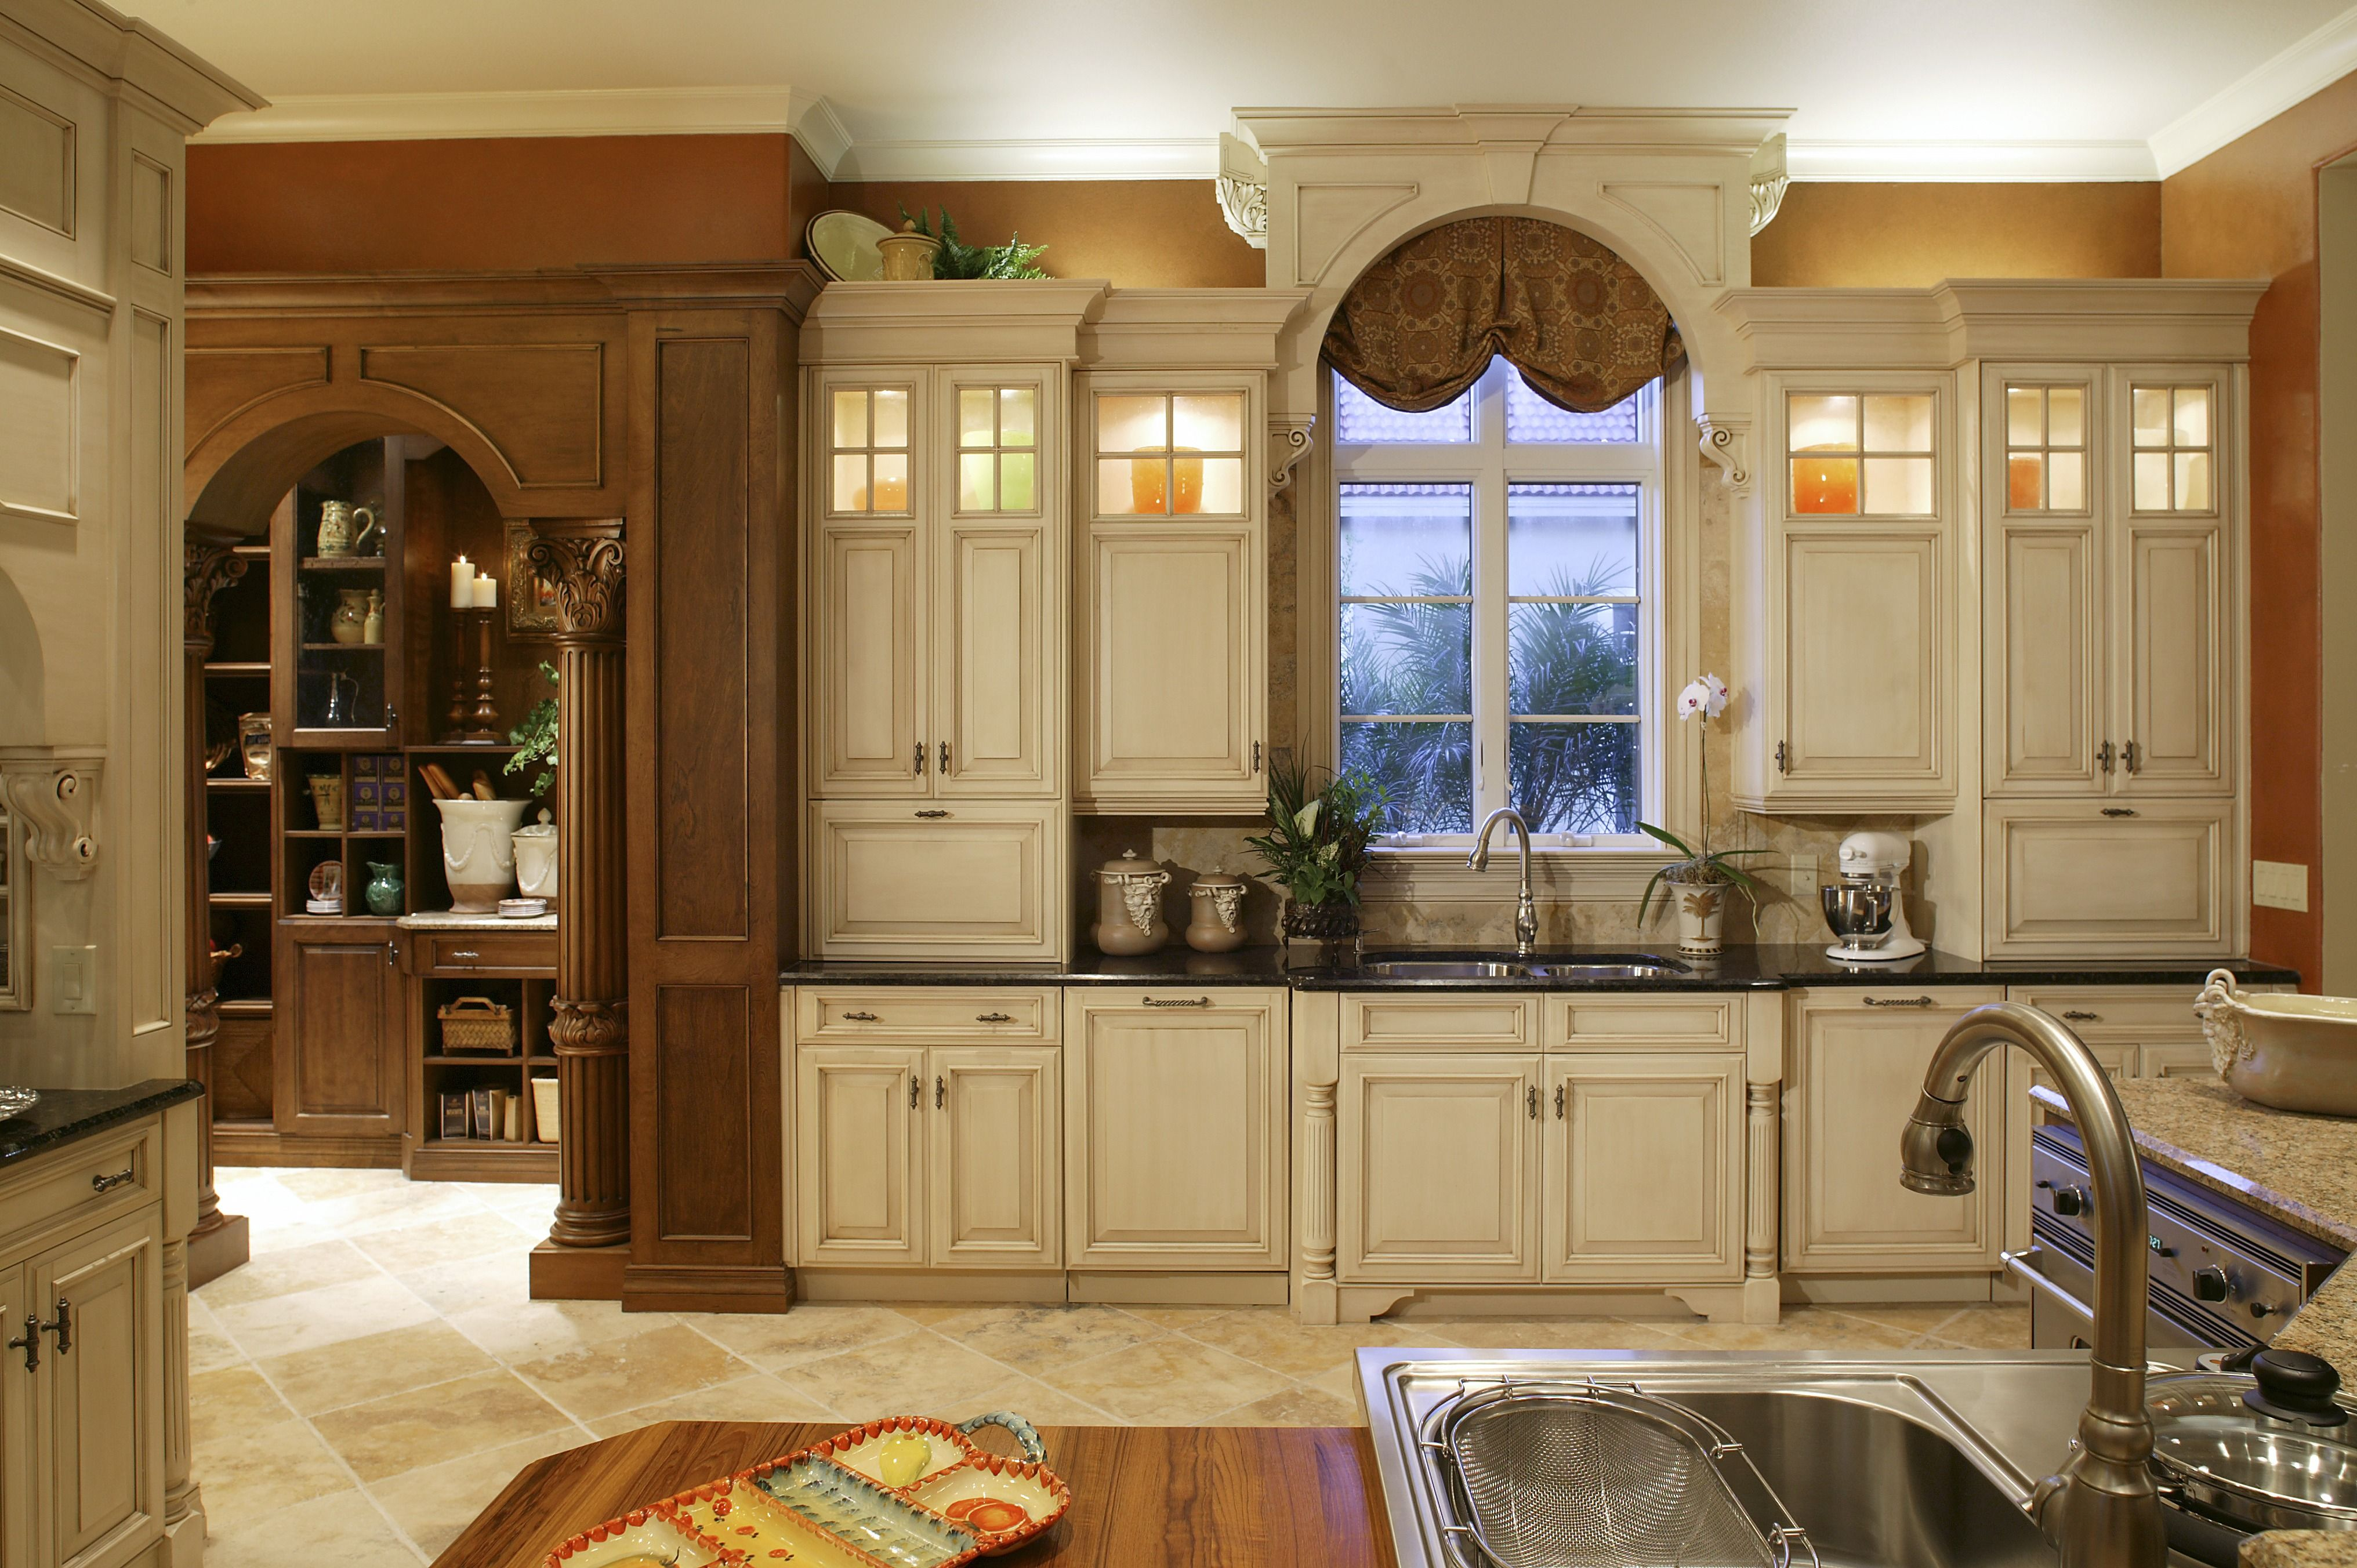 Kitchen Remodel Return On Investment Roi Kitchen Remodel Cost Cost Of Kitchen Cabinets Condo Kitchen Remodel